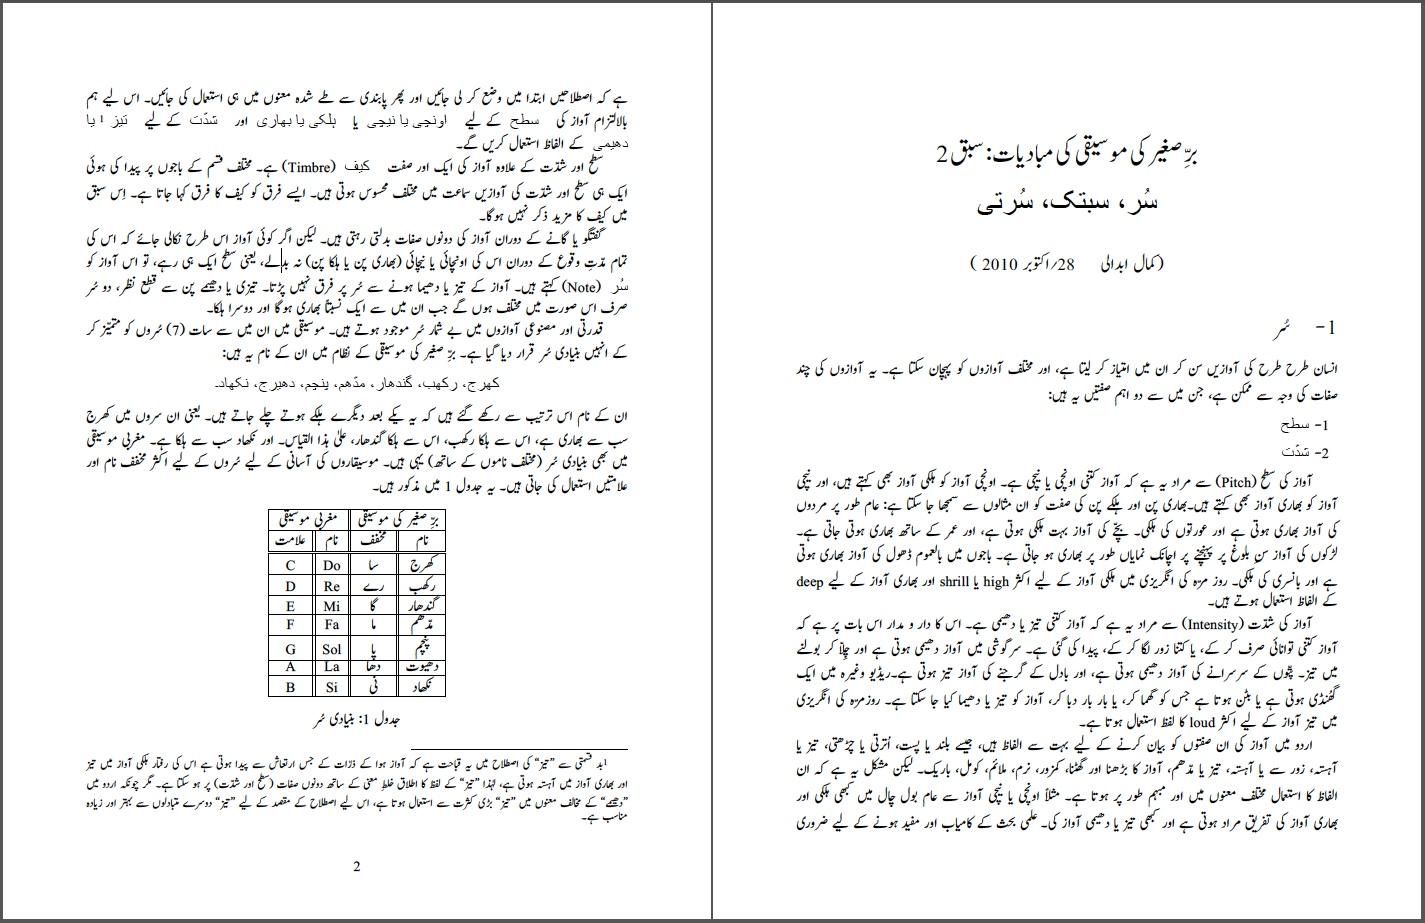 exercise essay in urdu uk essays westvalley city personal statement editing